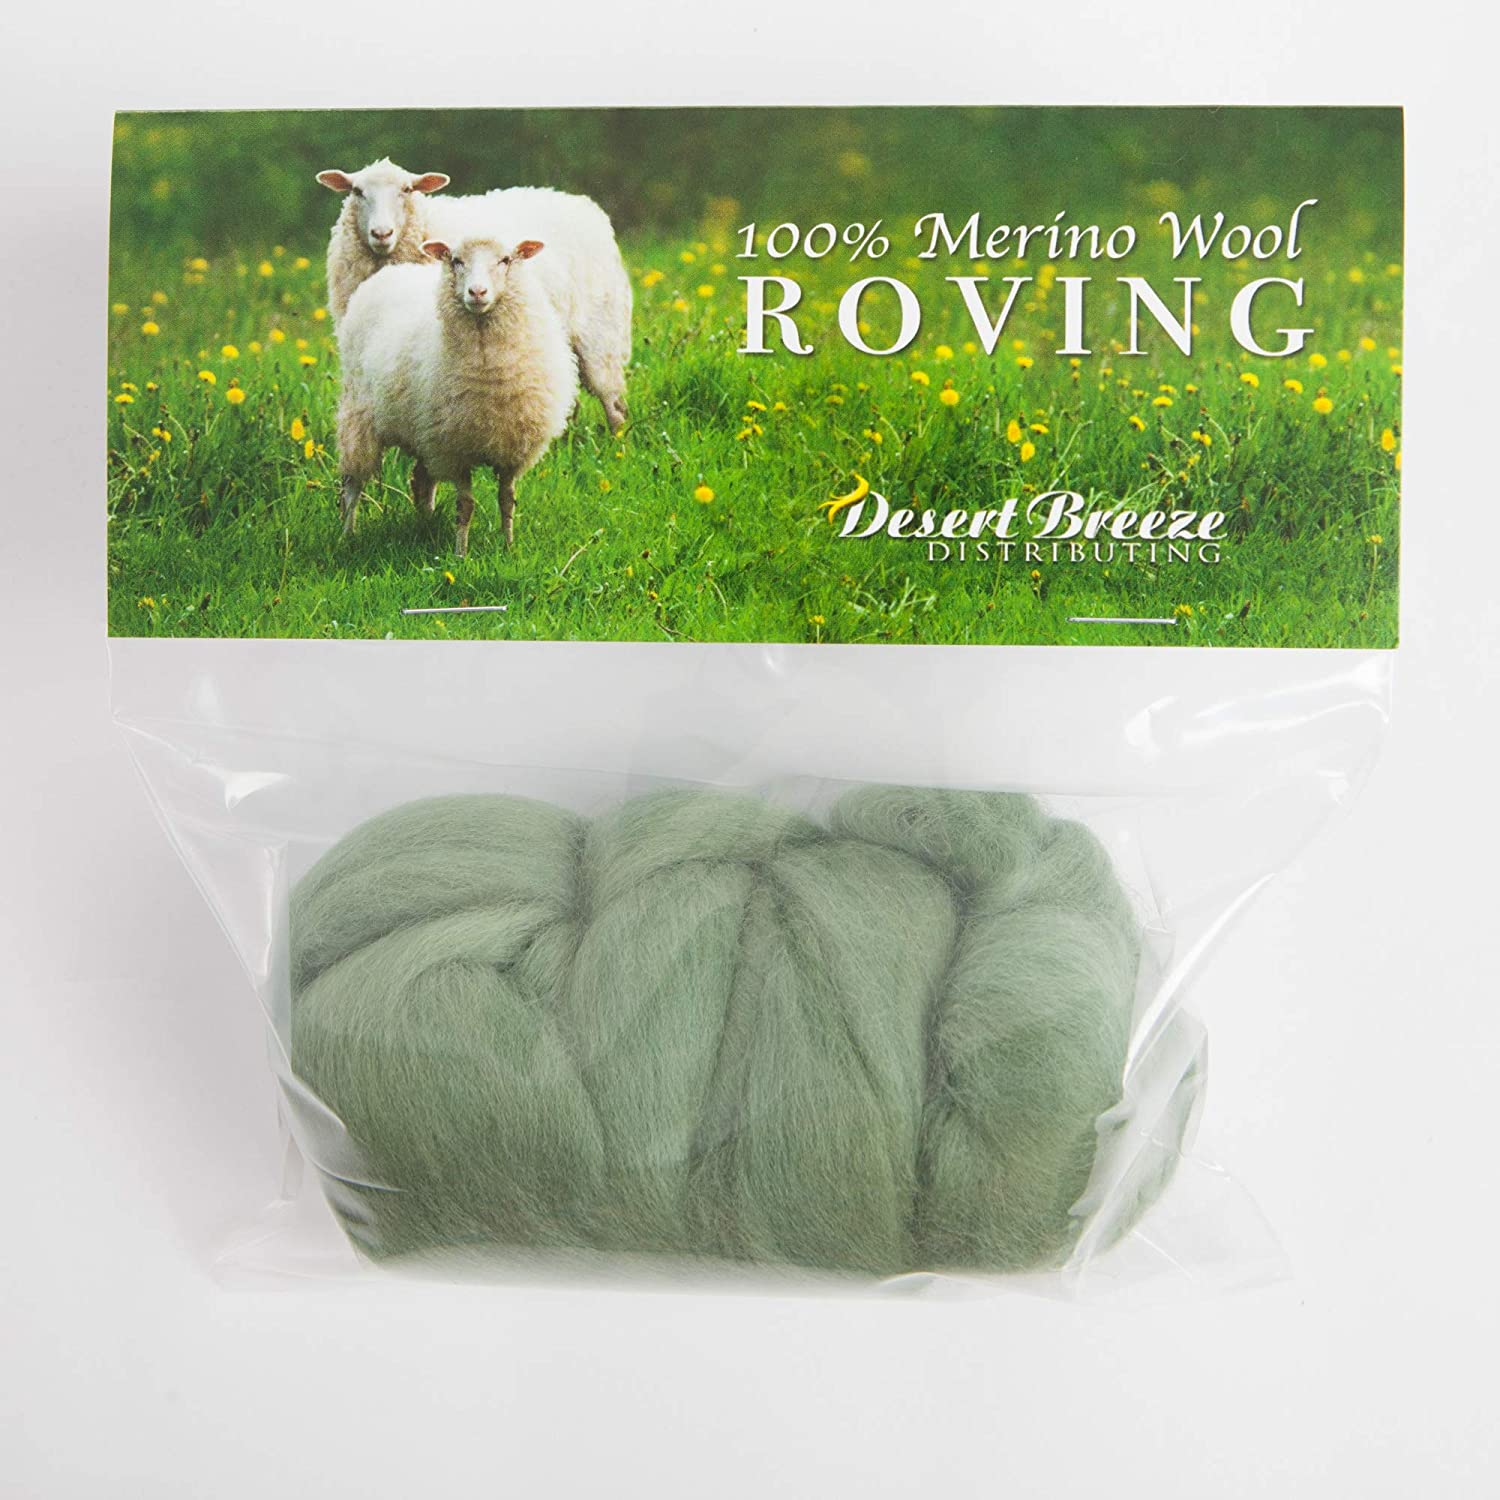 100/% Pure Wool Color Blue Made in The UK Perfect for Felting Projects Premium Combed Top 21 Micron Merino Wool Roving